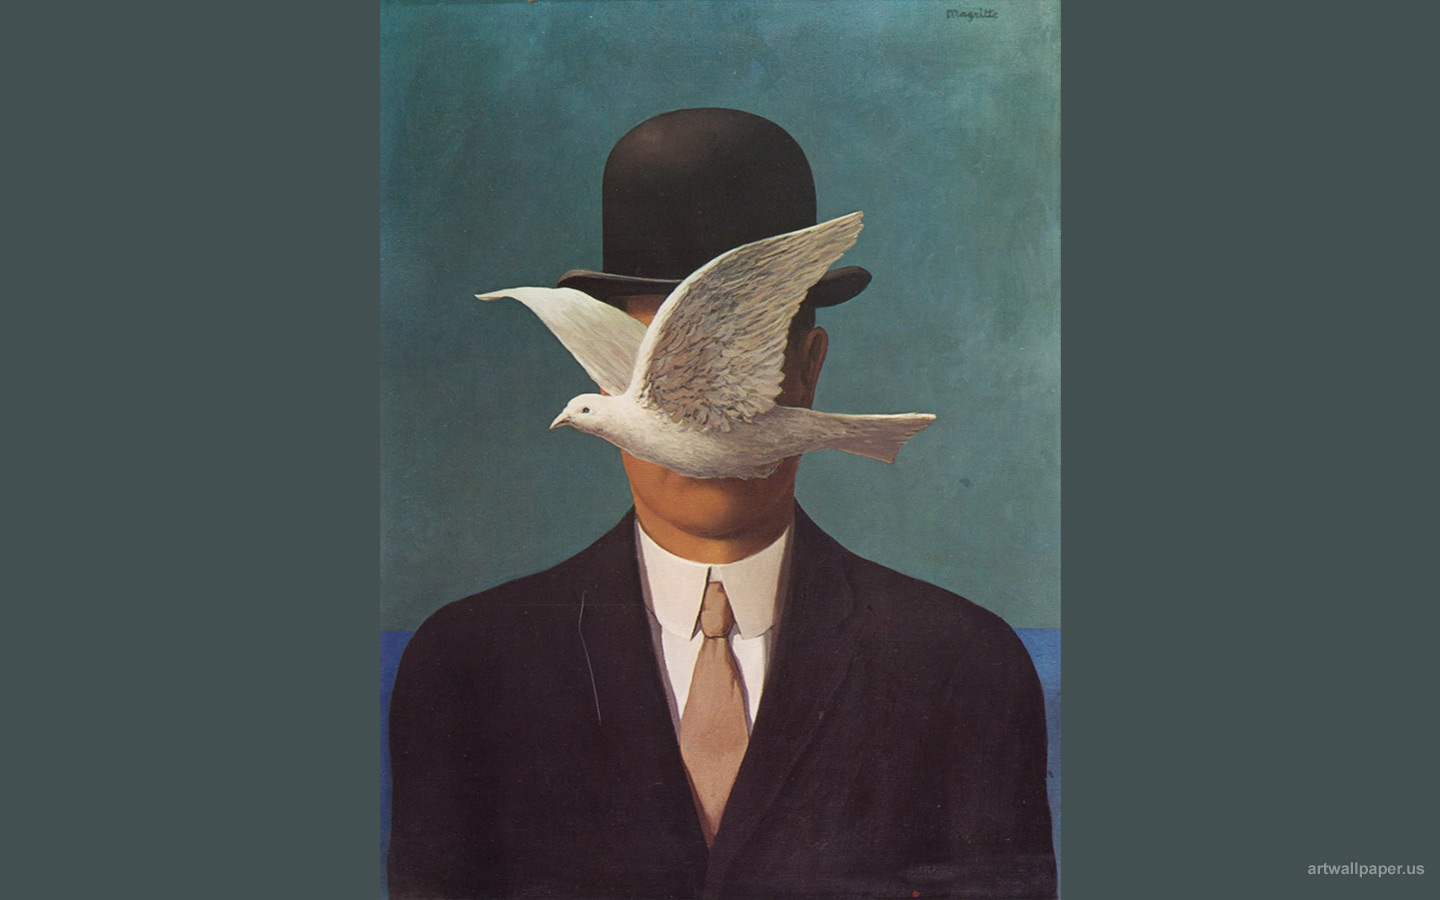 3d Cool Wallpaper Hd For Mobile Magritte Wallpapers 500 Collection Hd Wallpaper